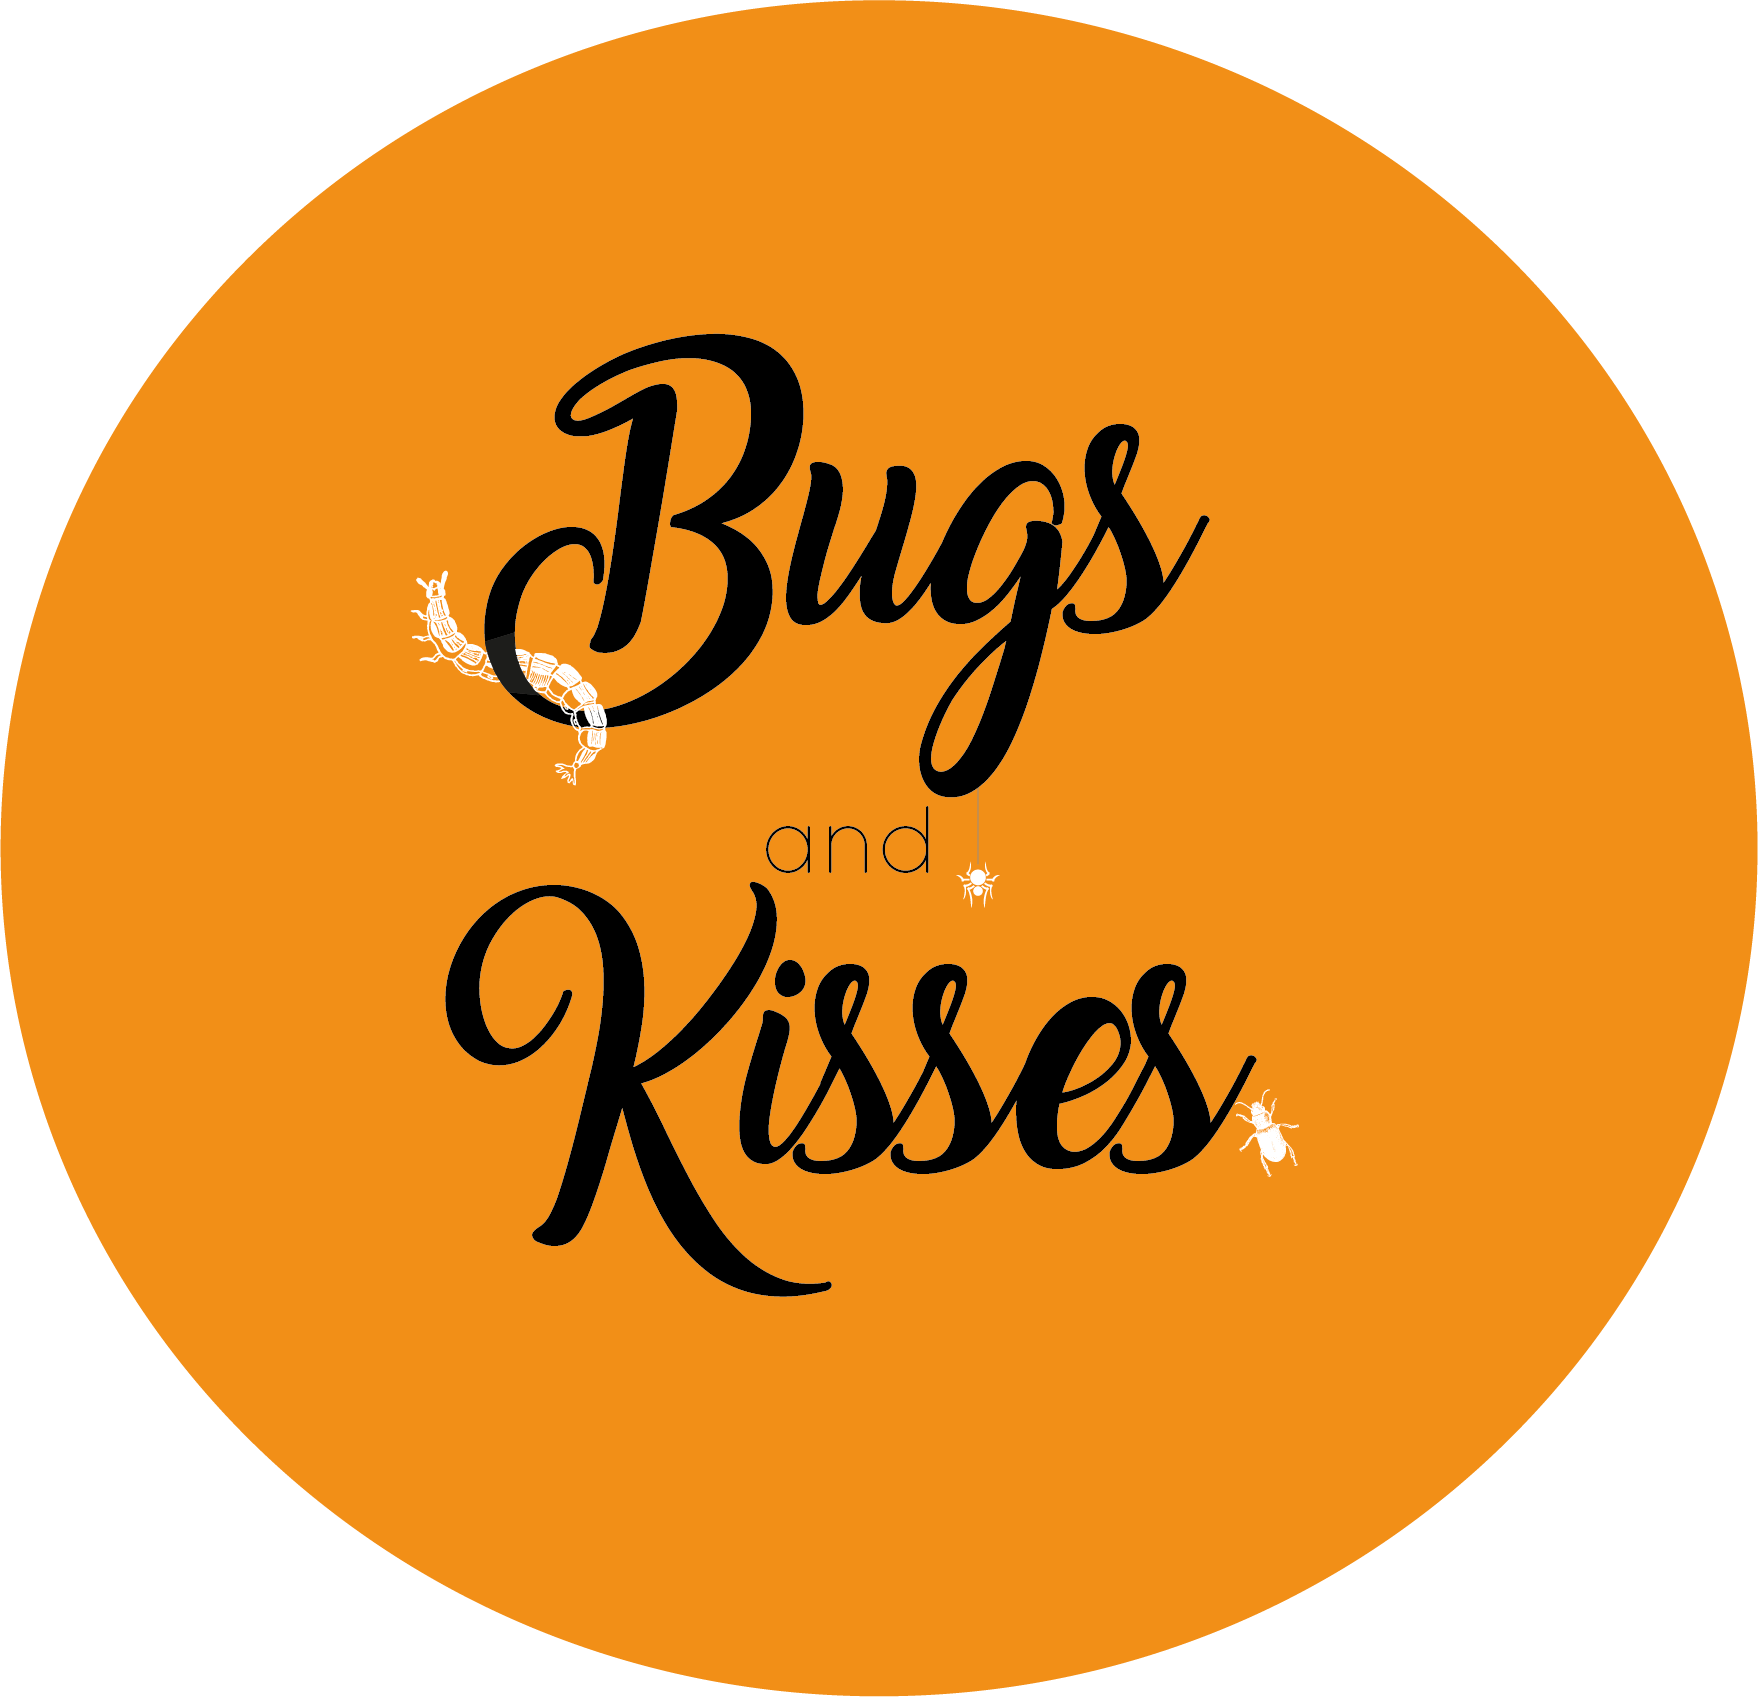 Orange Bugs and Kisses Halloween Themed Stickers